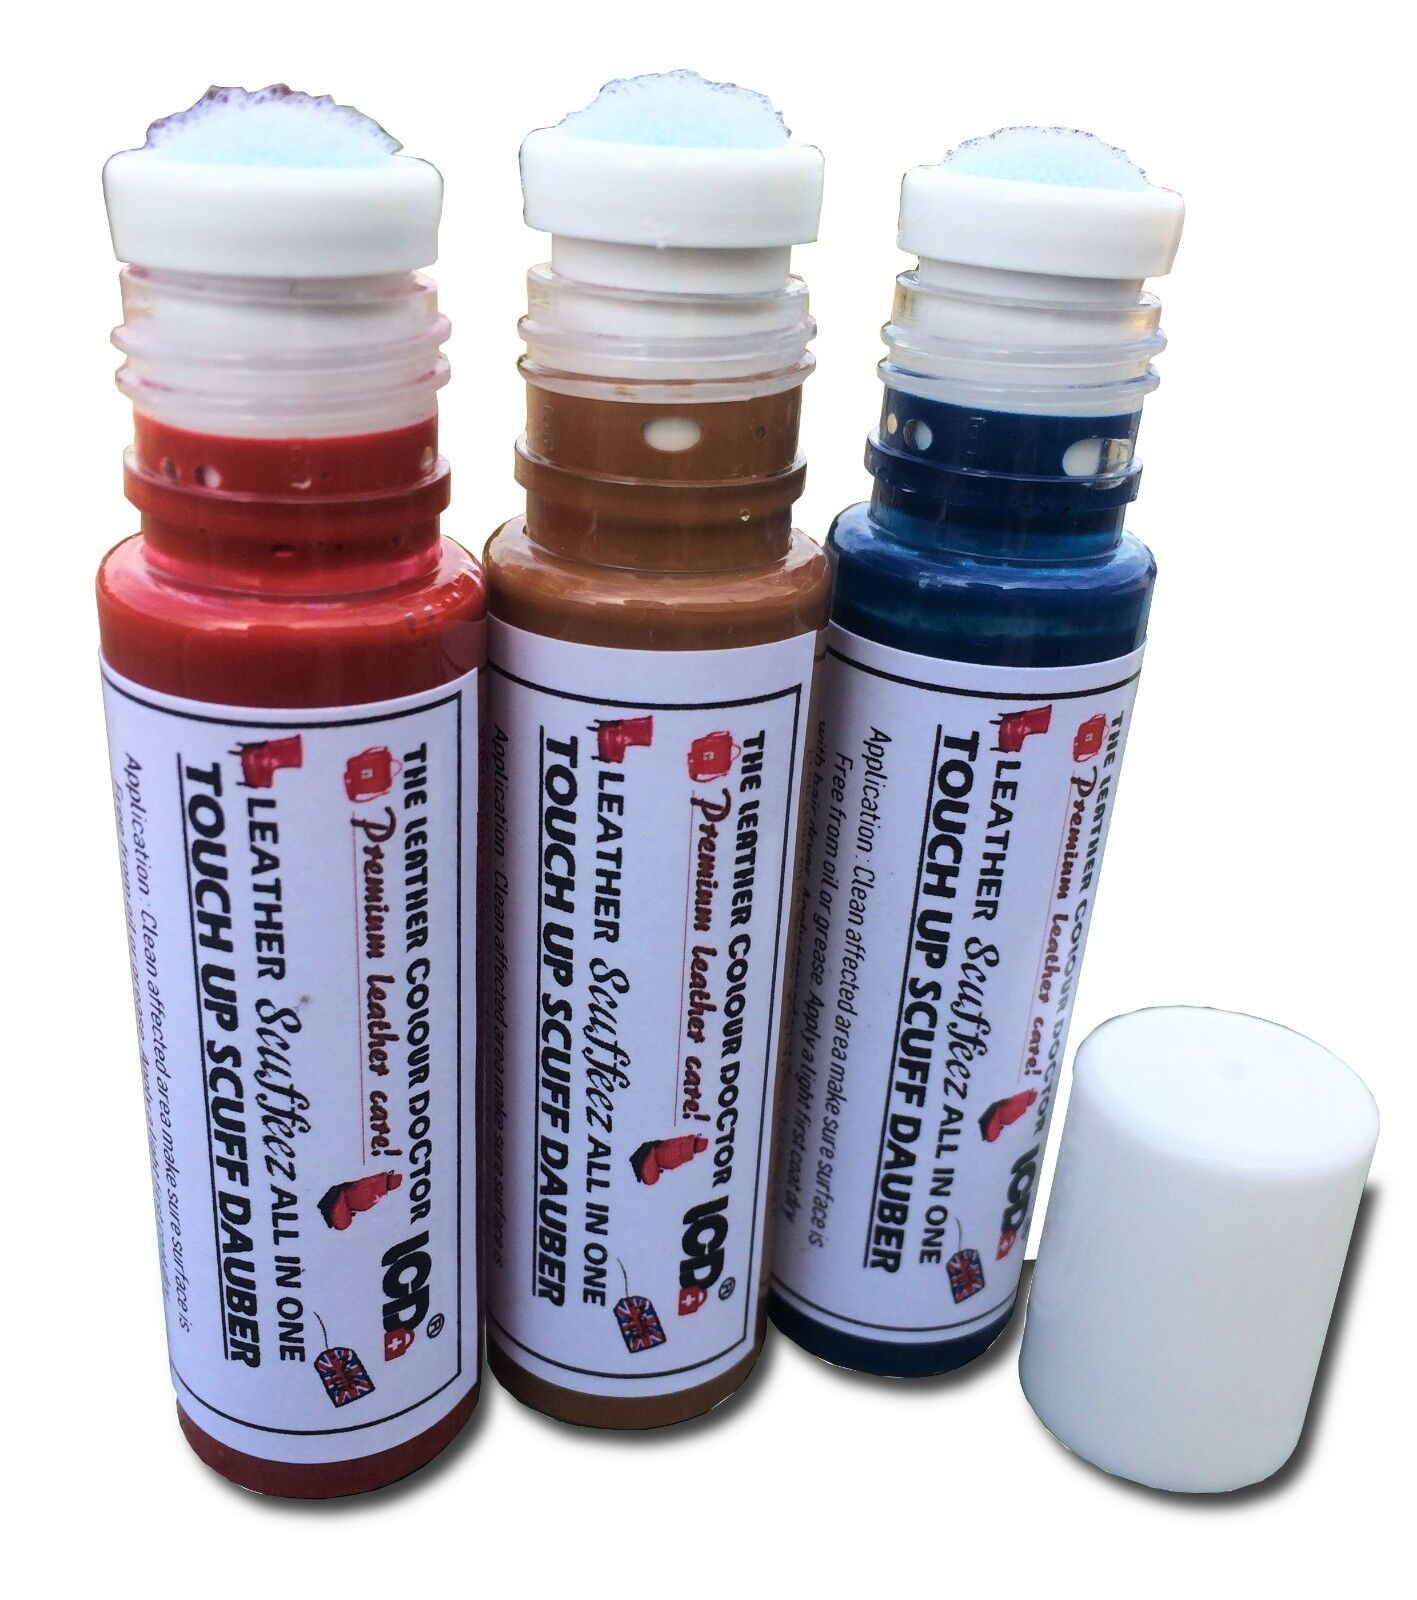 Leather dye touch up pen scratch repair dauber, colourant restorer dabber kit.